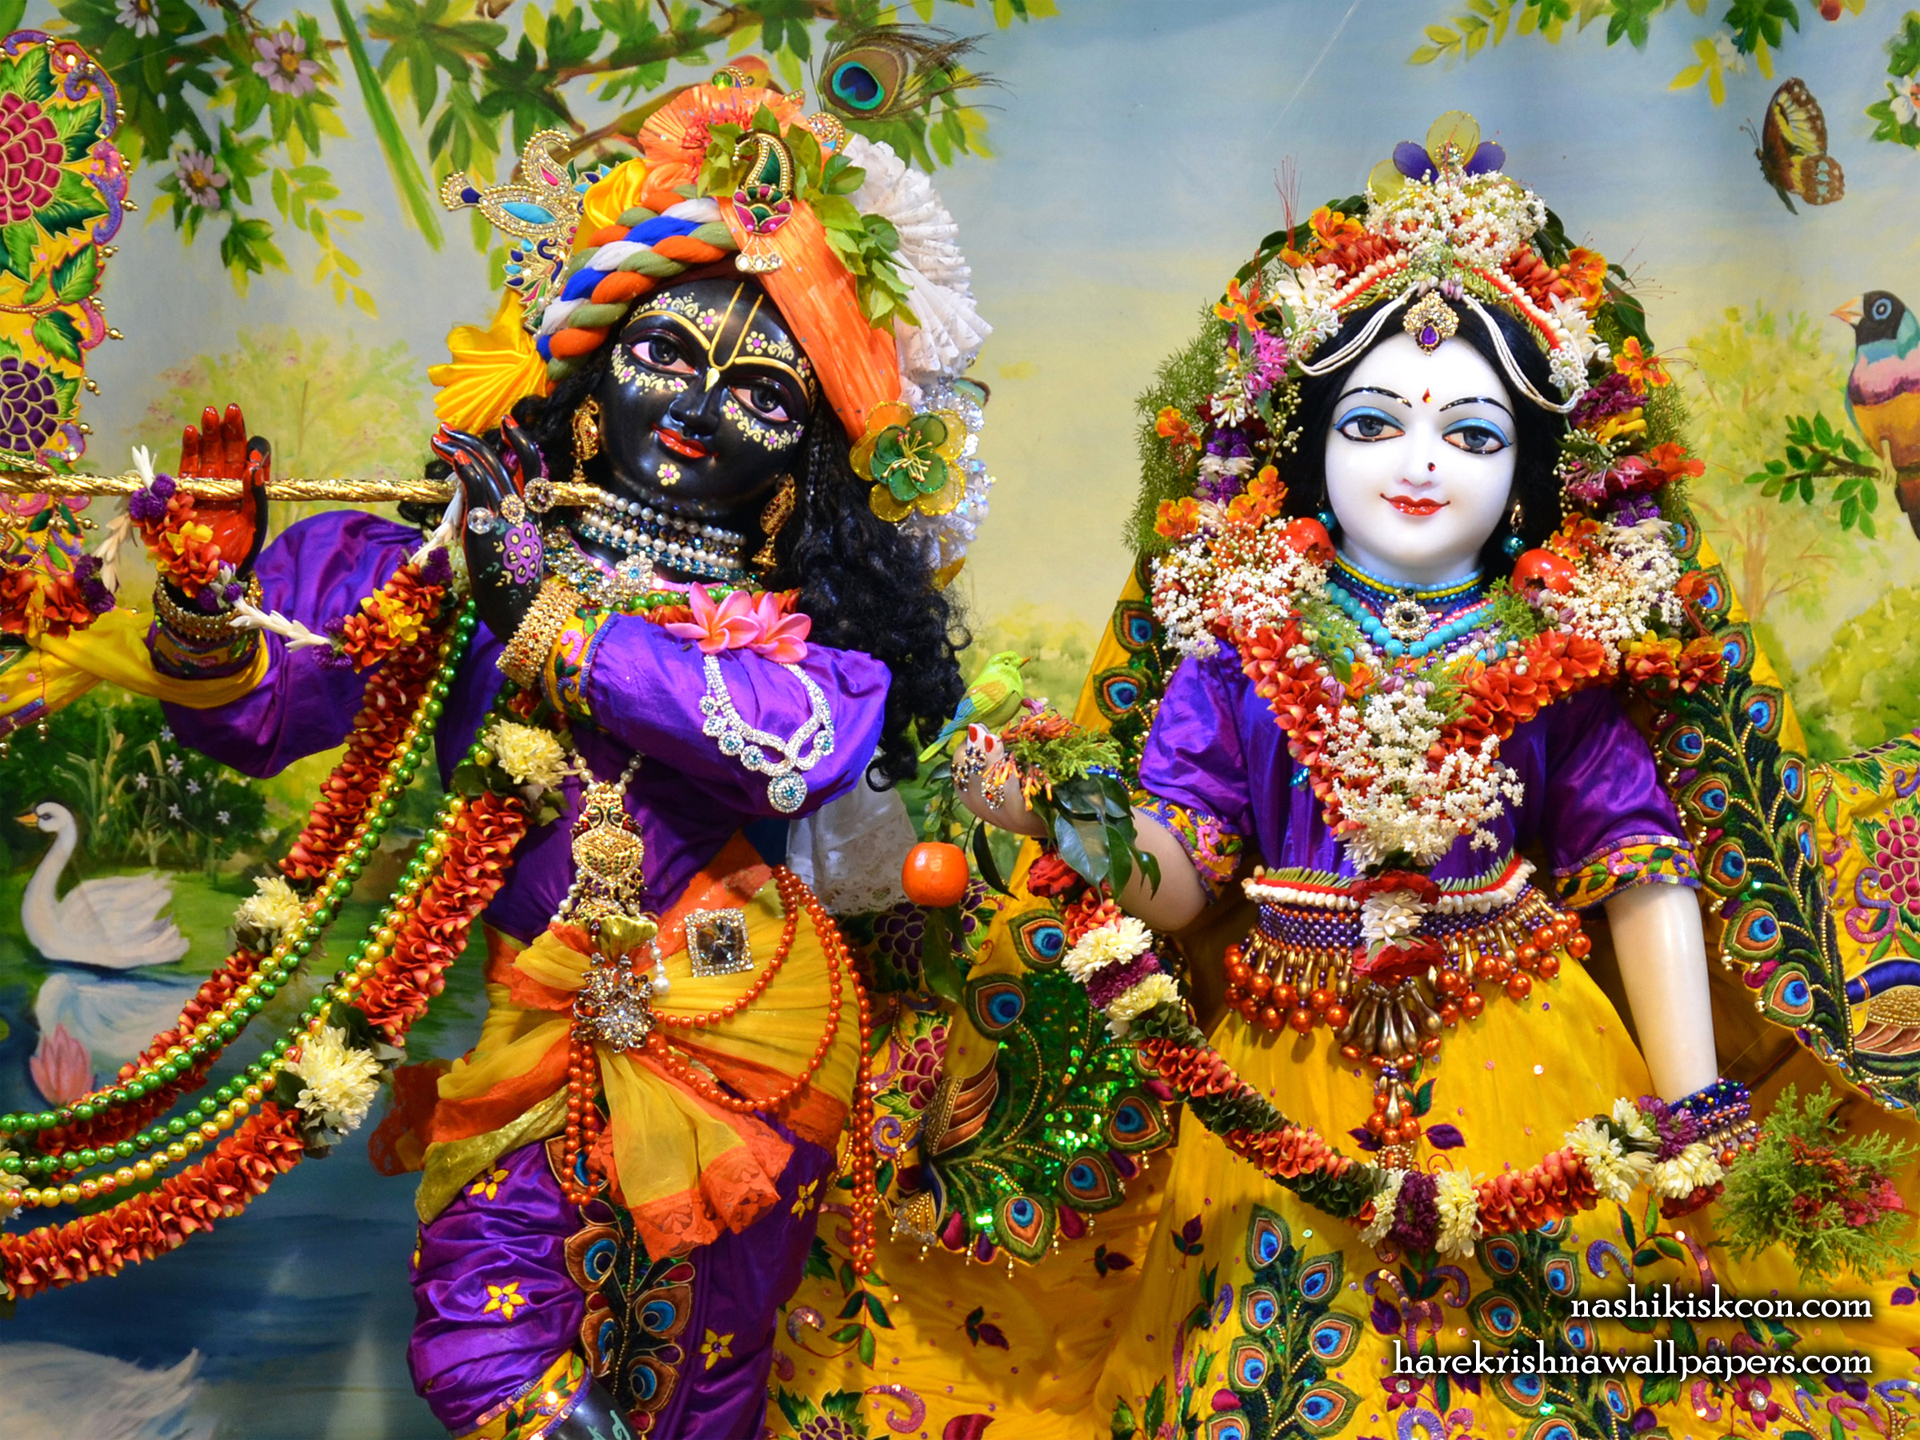 Sri Sri Radha Madan Gopal Close up Wallpaper (010) Size 1920x1440 Download